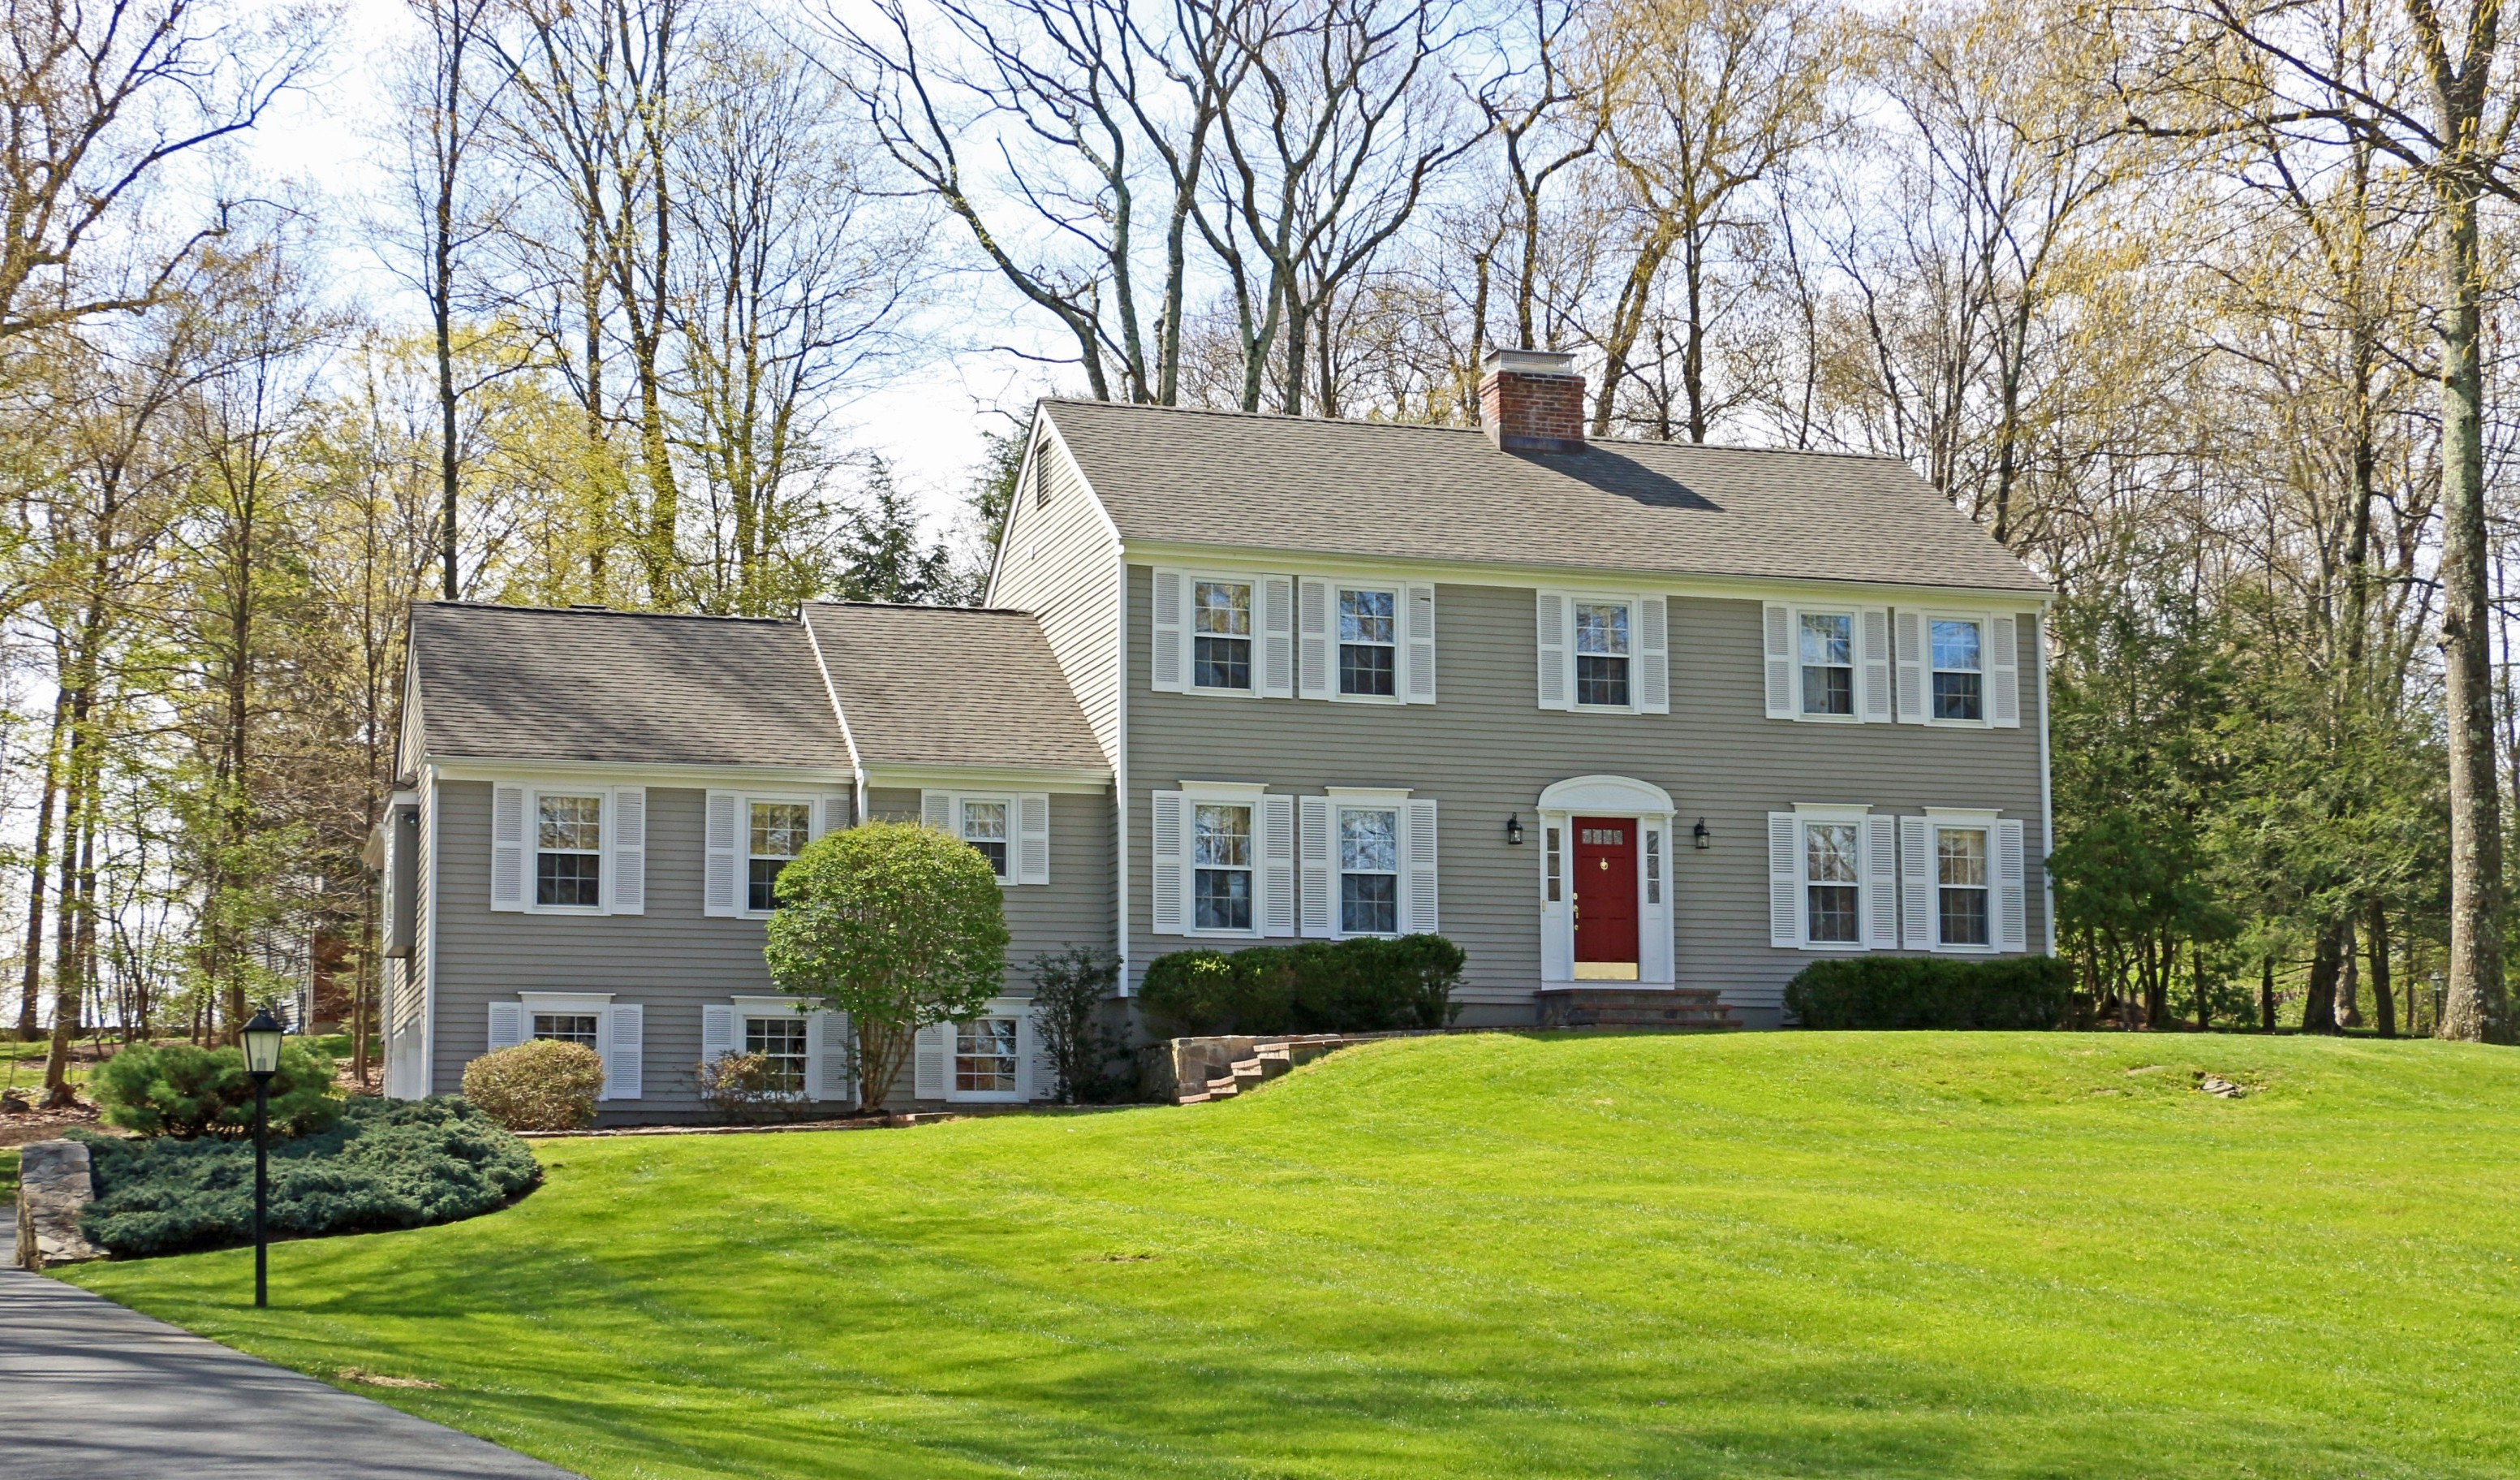 Vivienda unifamiliar por un Venta en Gracious & Welcoming 52 Bobbys Court Ridgefield, Connecticut, 06877 Estados Unidos